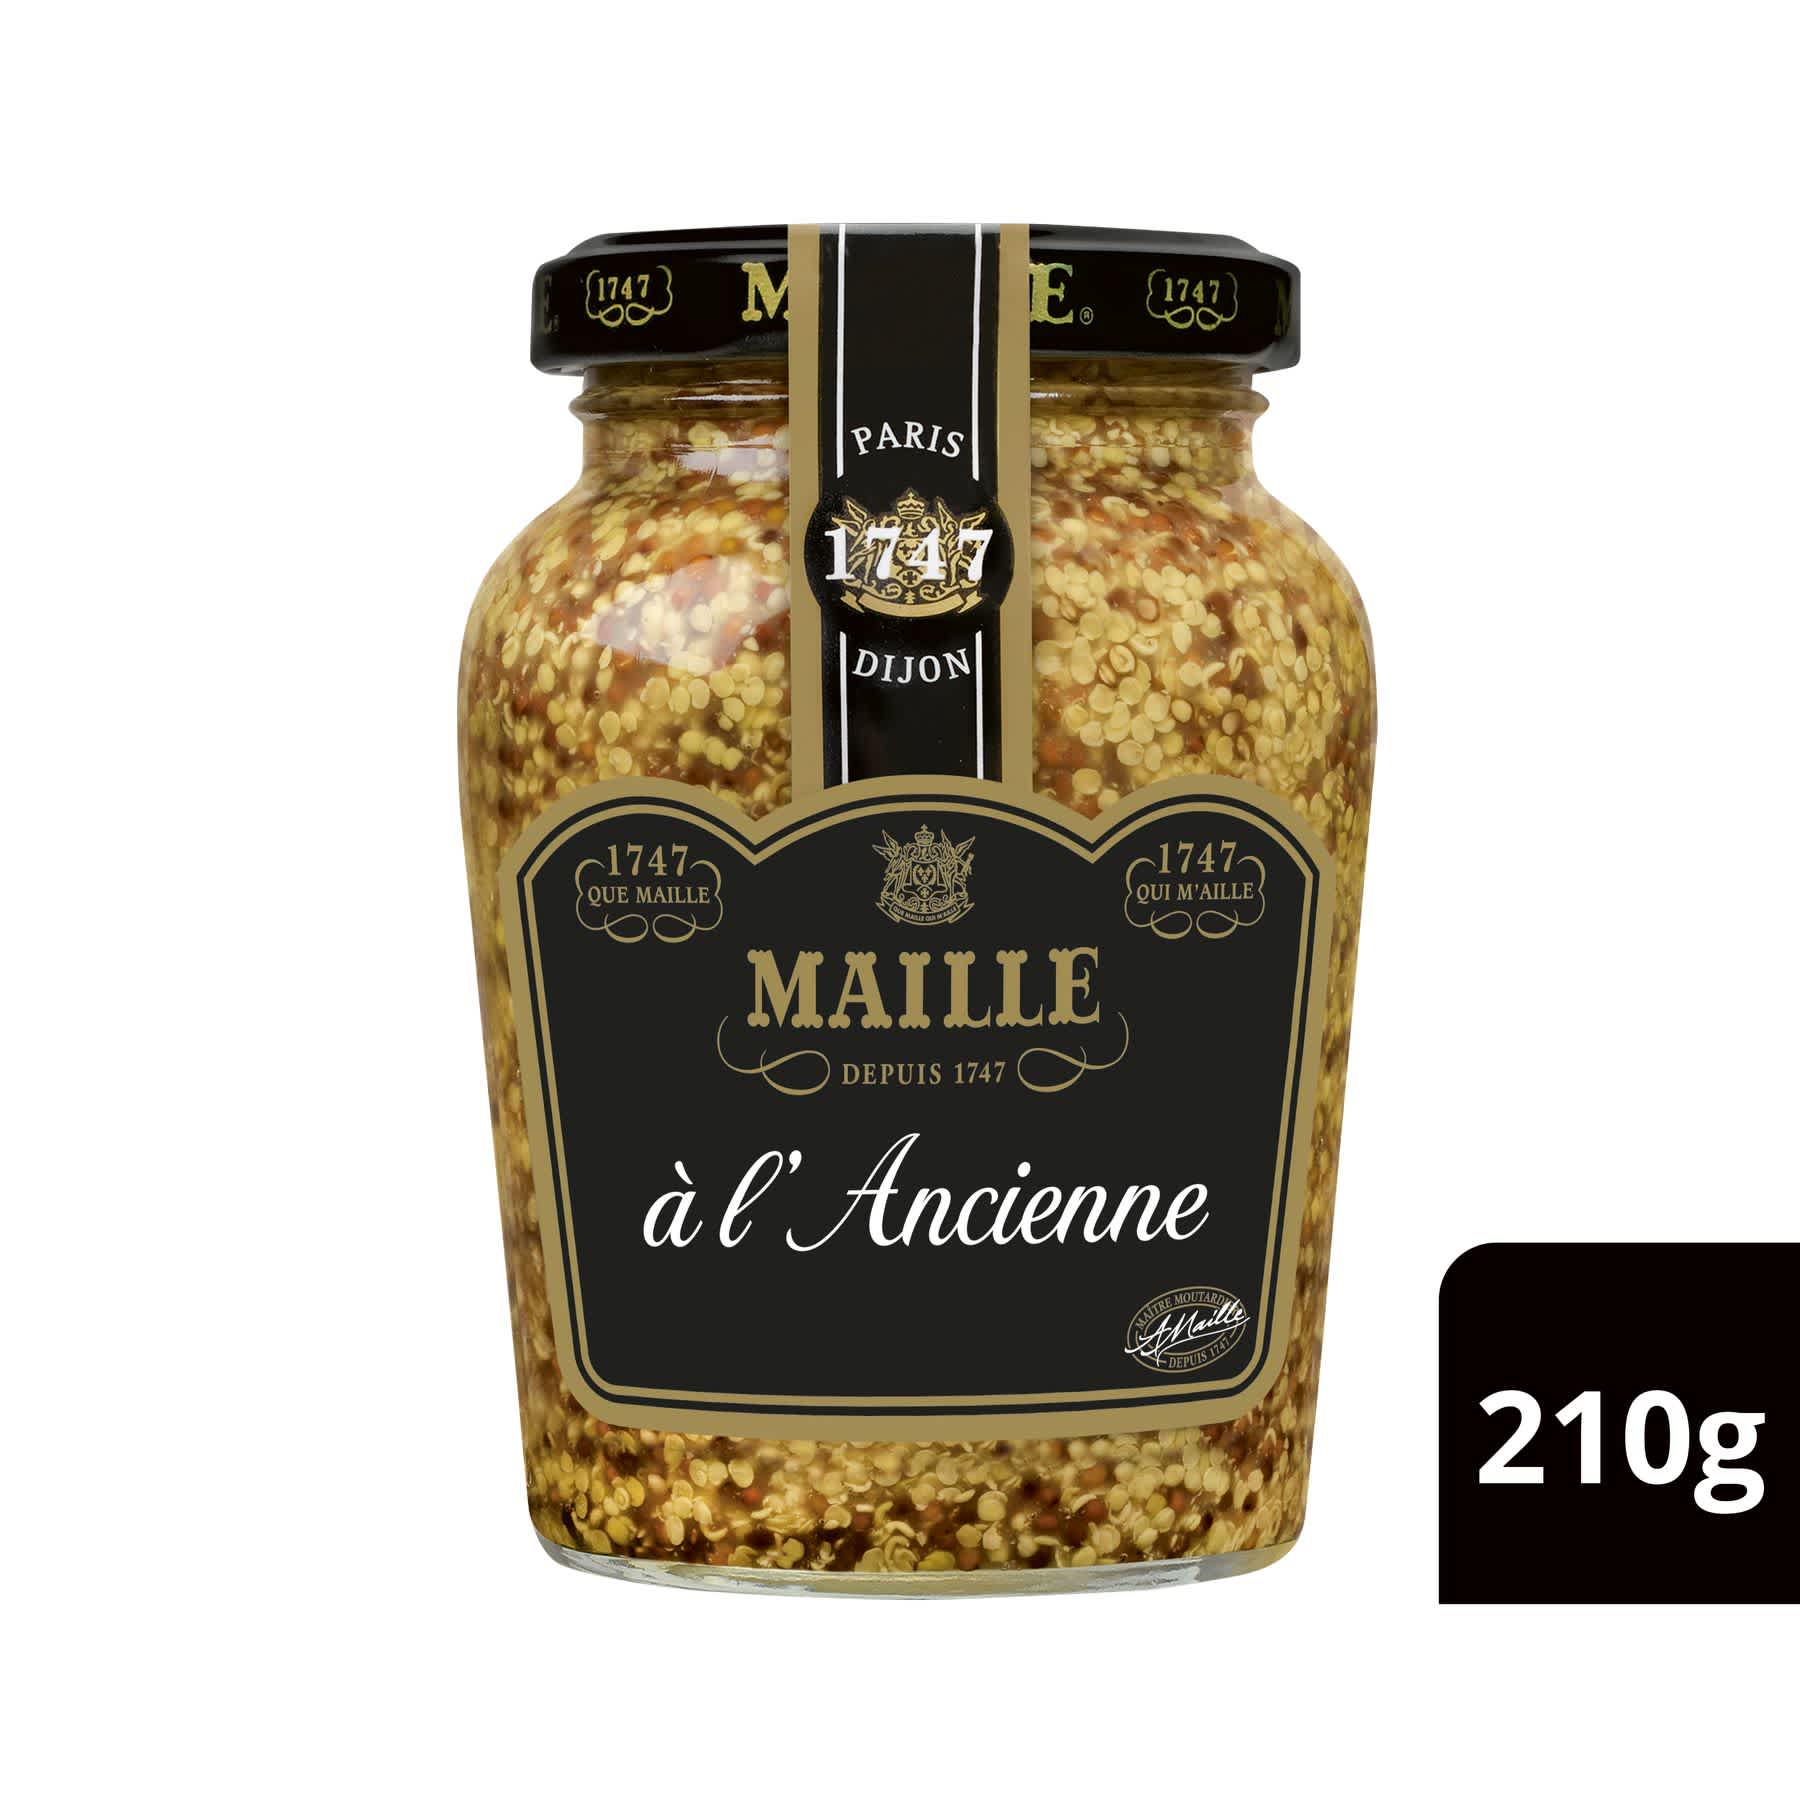 Maille Moutarde a l'Ancienne 210g